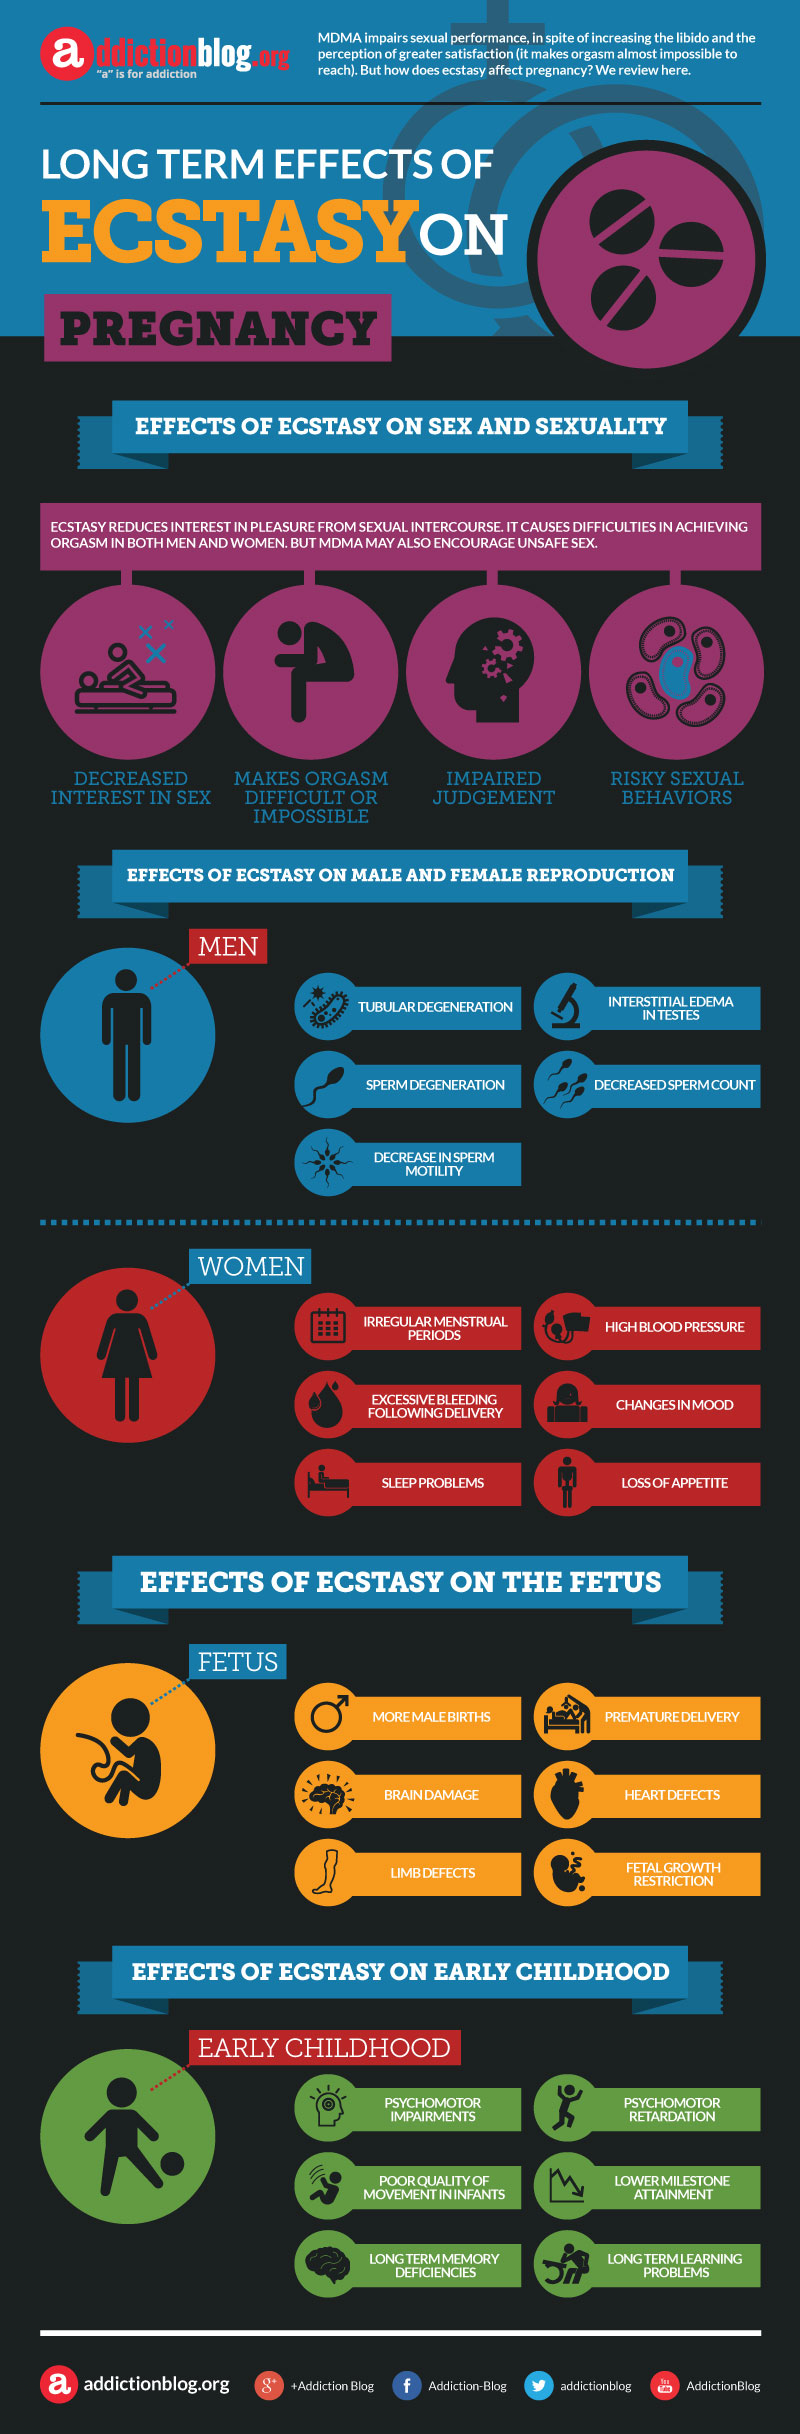 Effects of ecstasy on pregnancy (INFOGRAPHIC)